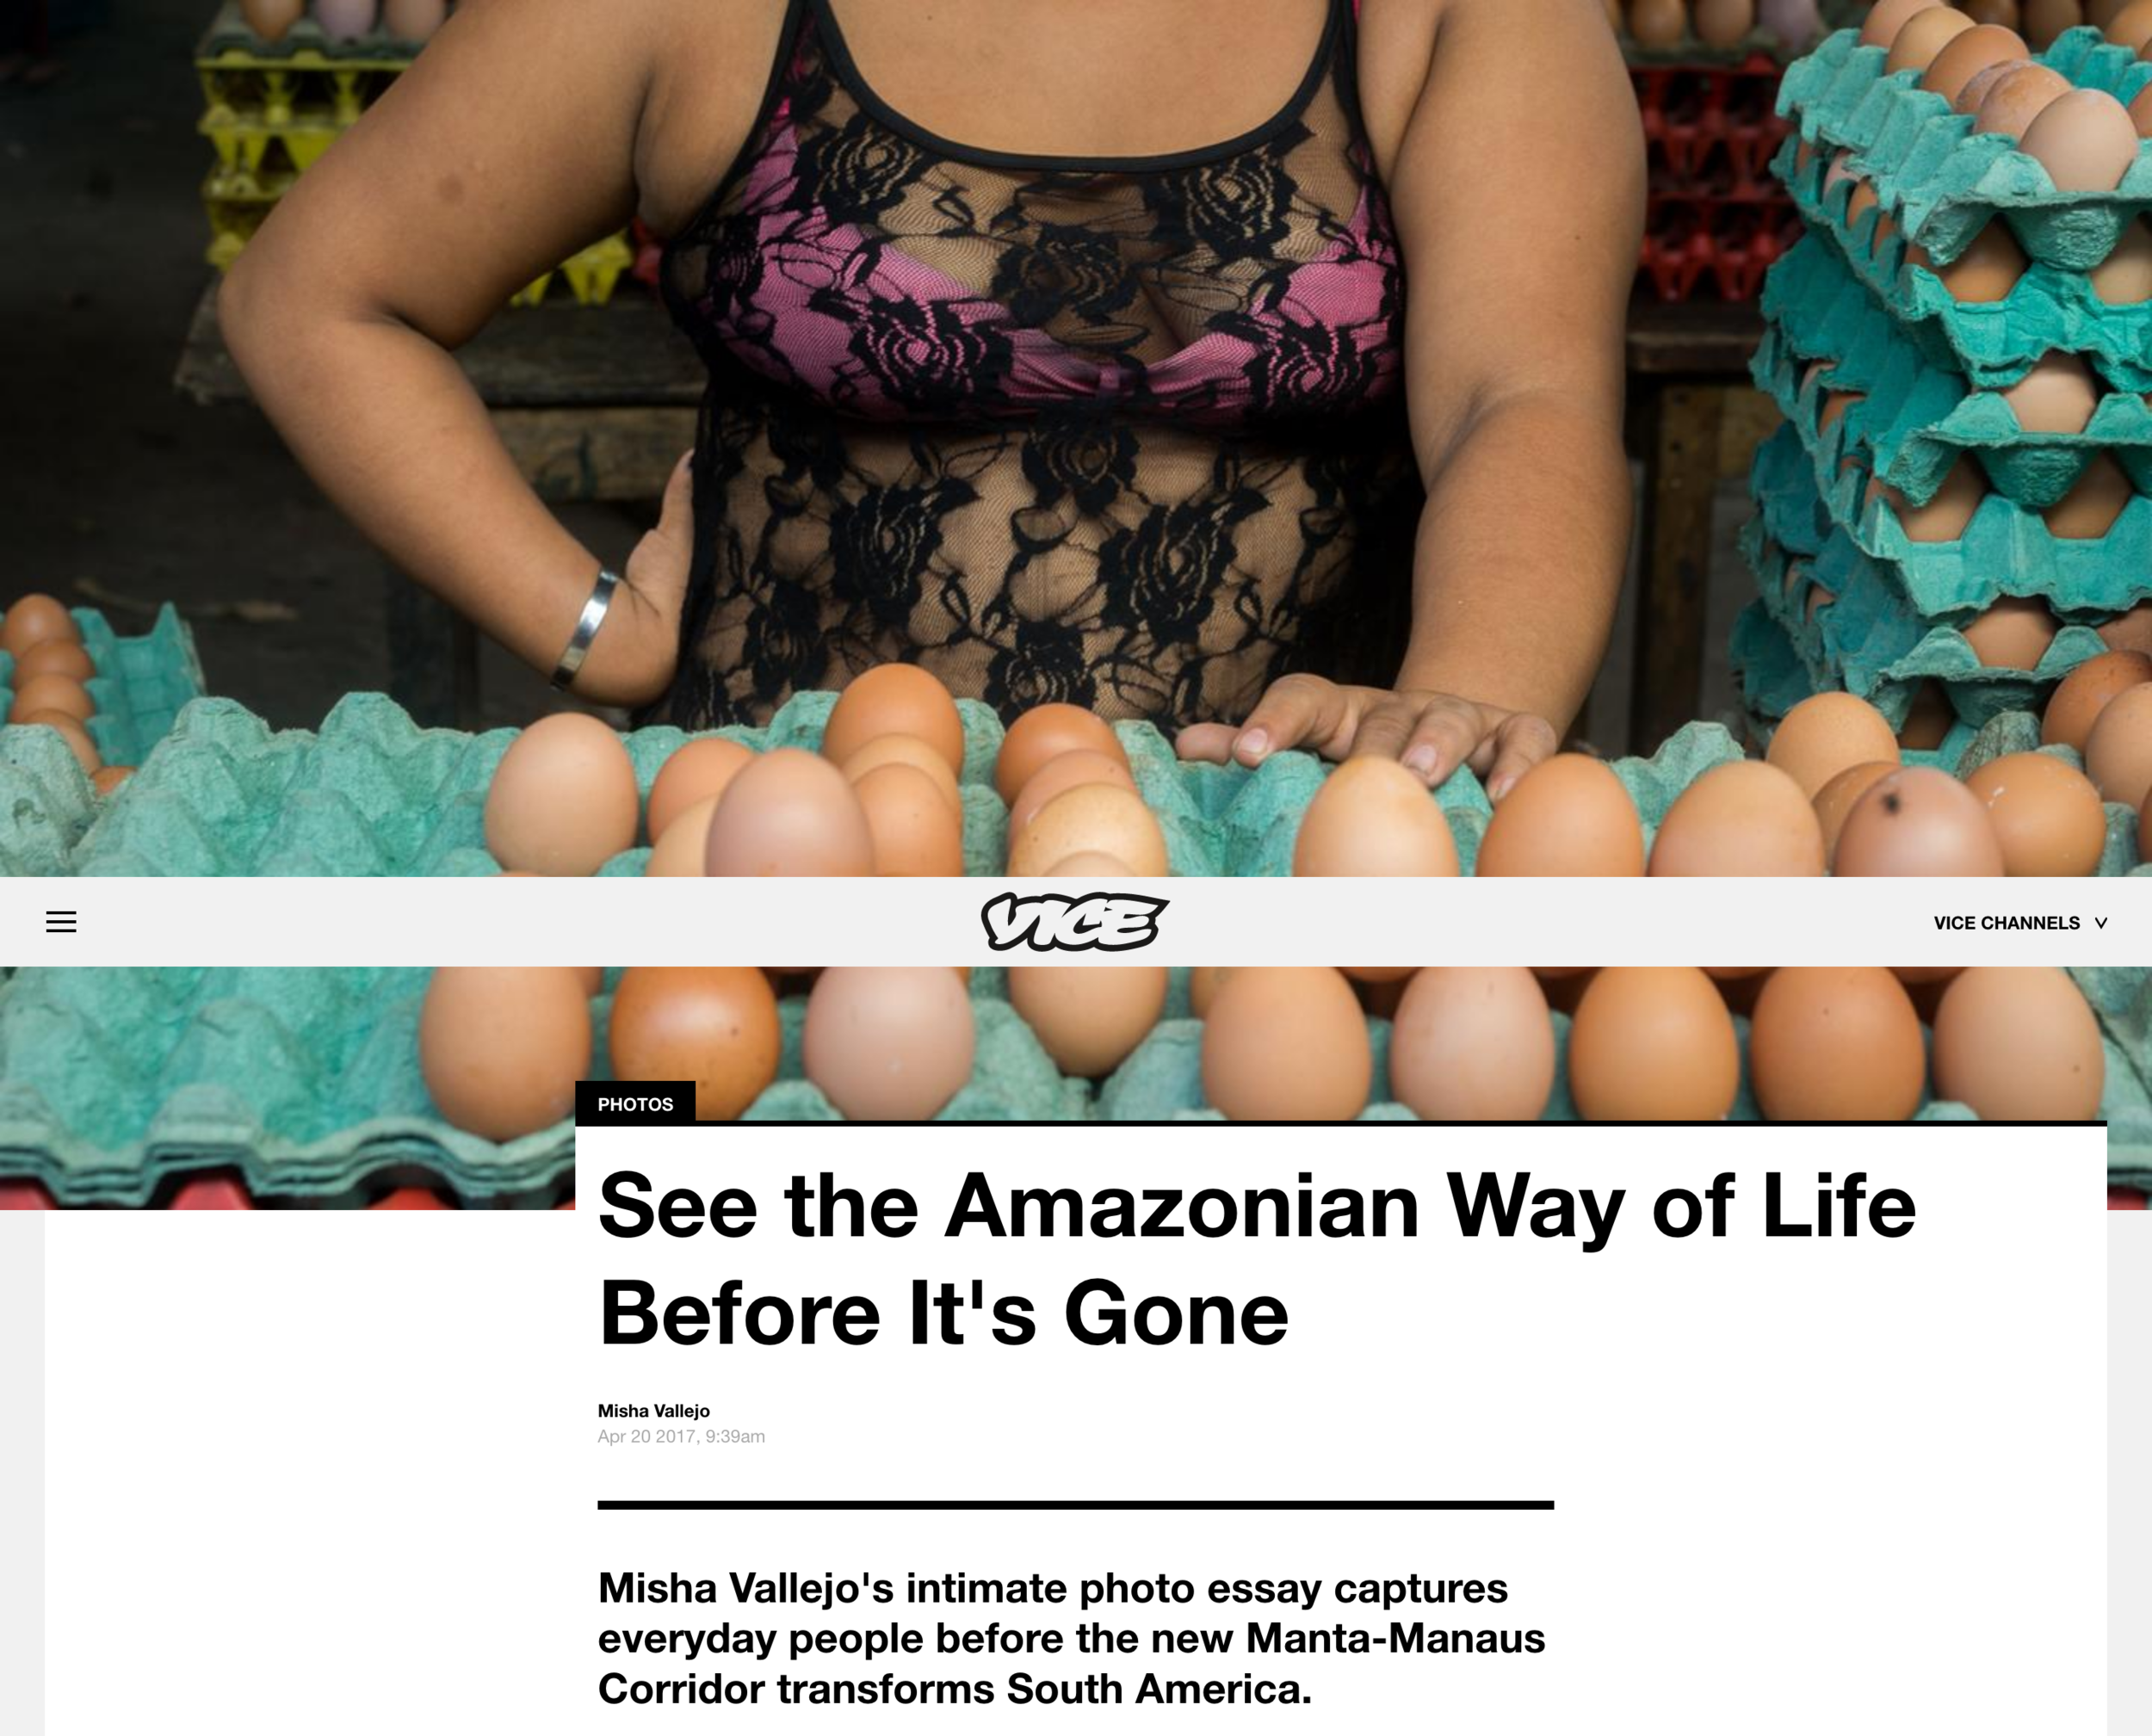 Screenshot-2017-10-20 See the Amazonian Way of Life Before It's Gone.png